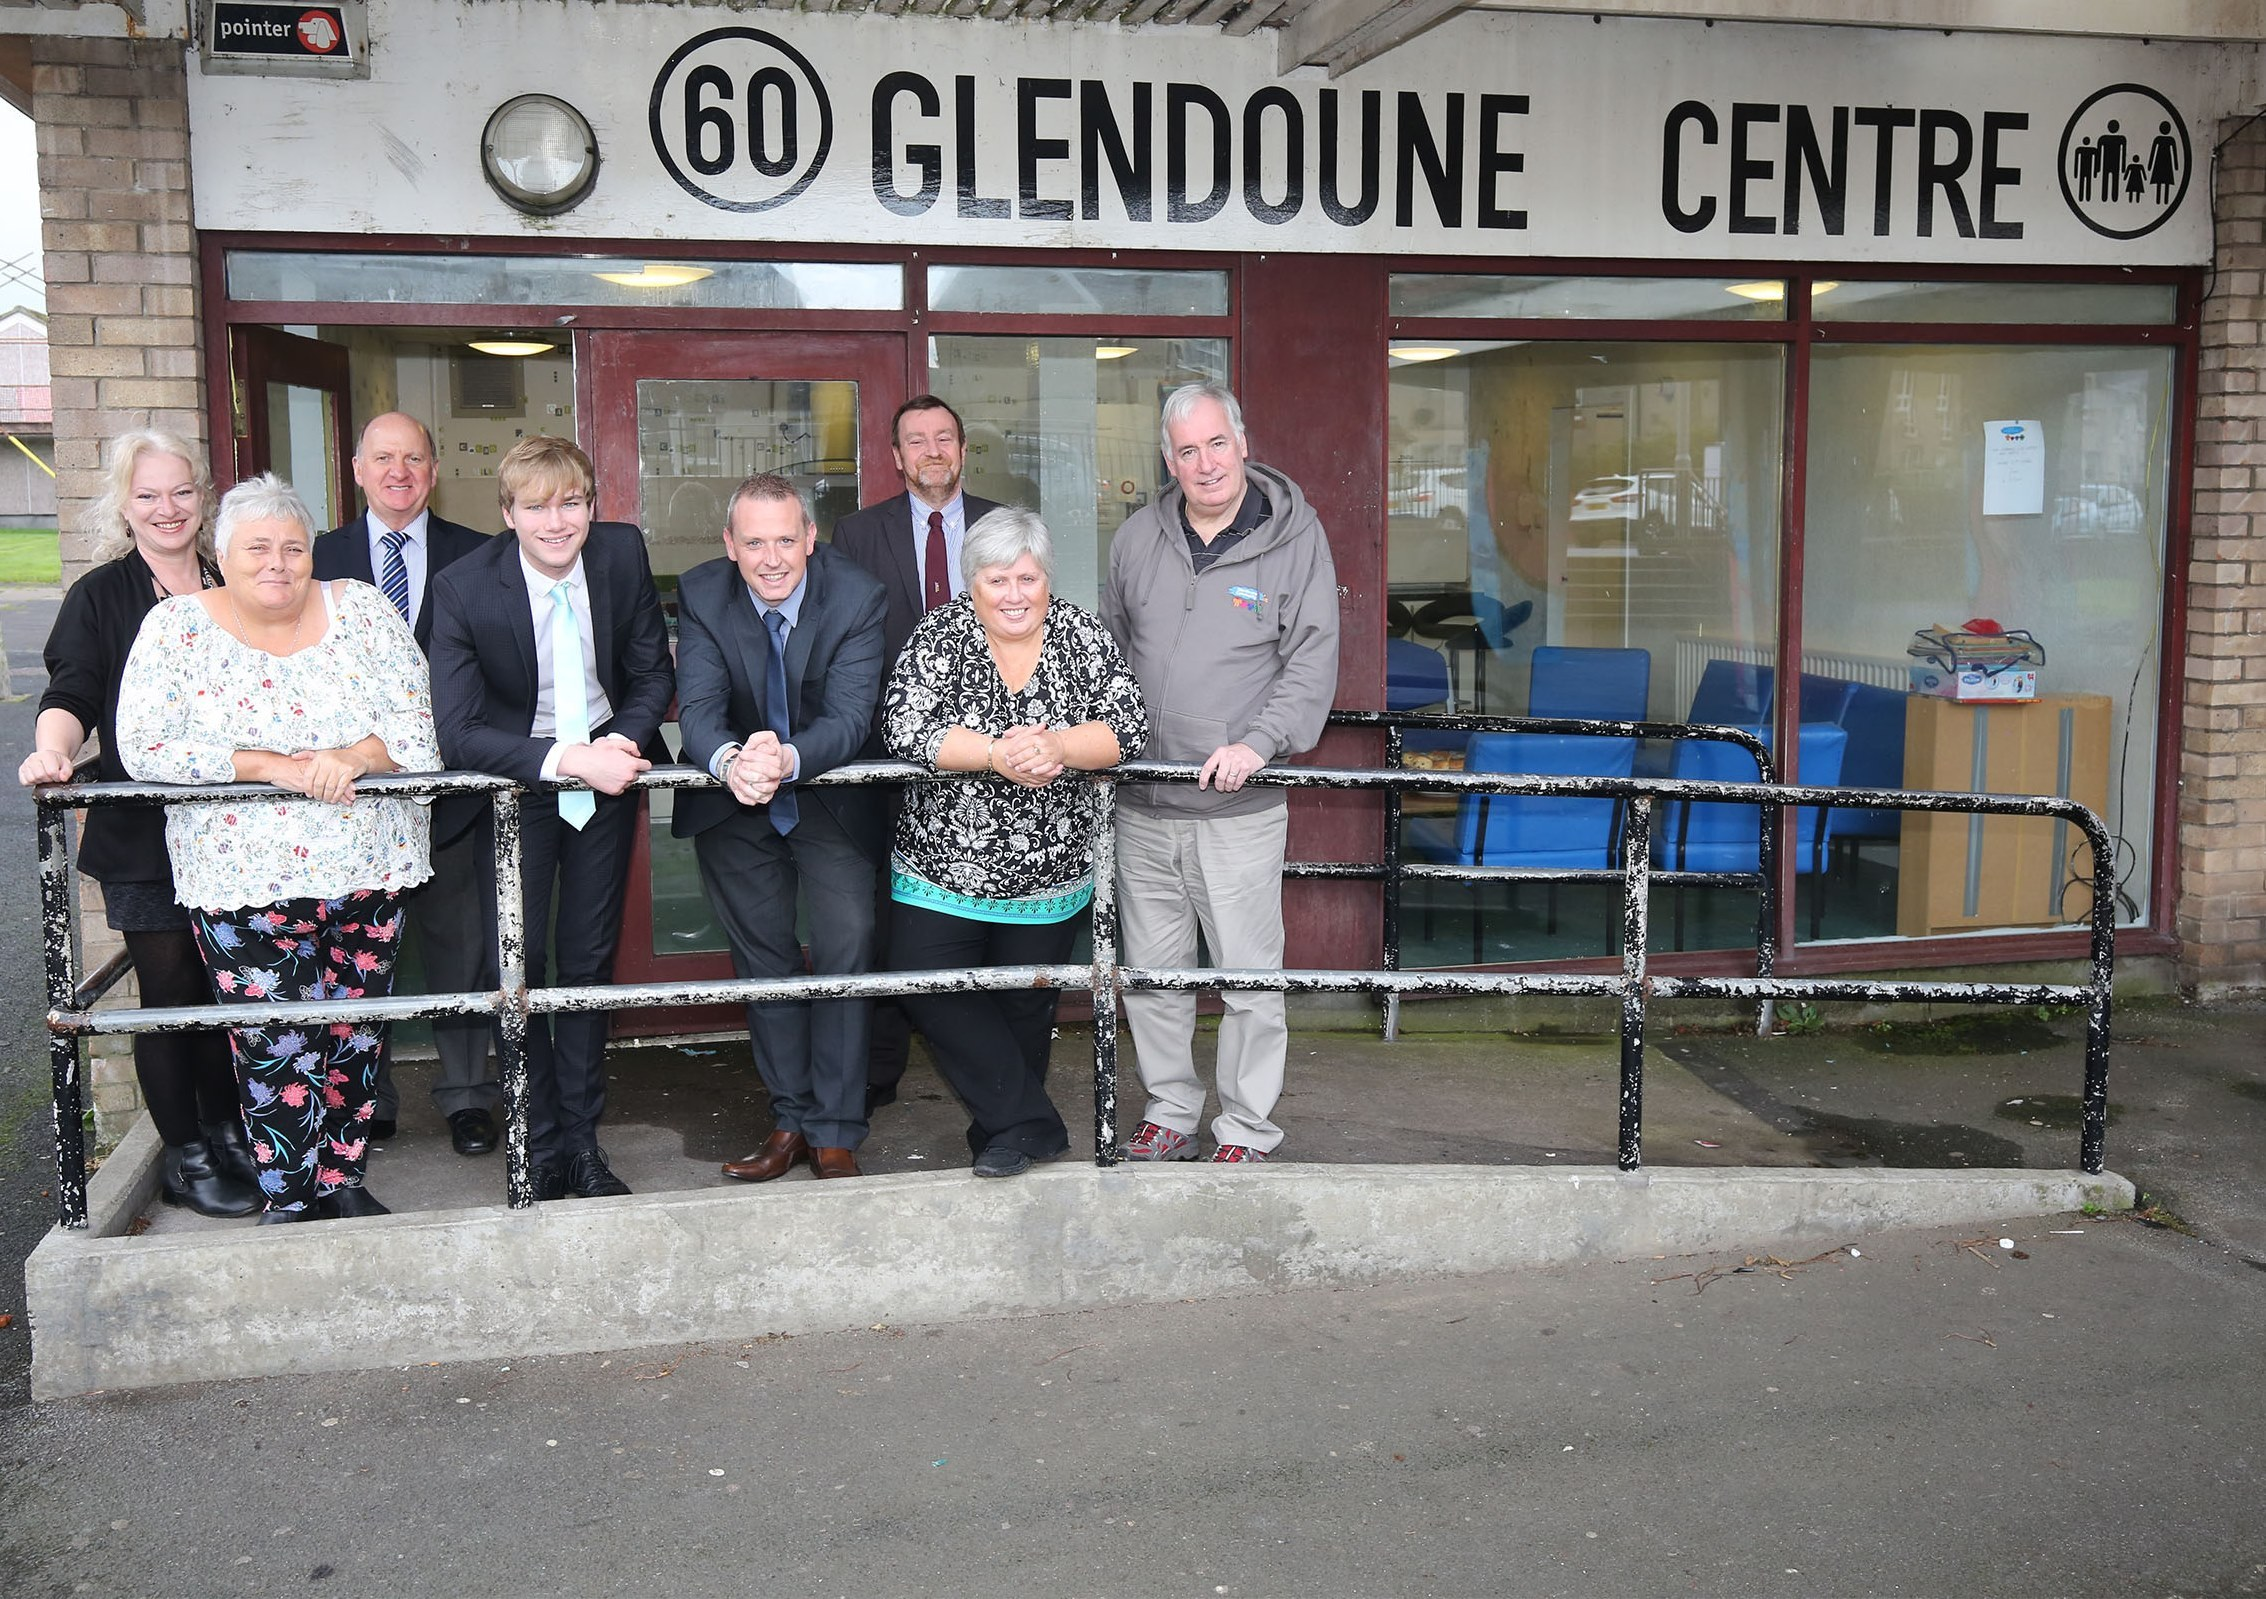 Ayrshire Company Rexel is donating £850 to Glendoune Community Association who are going to use the money to improve their community centre. This is through the Council's community benefit schemePhoto shows Councillor Alex Clark & Peter Henderson with